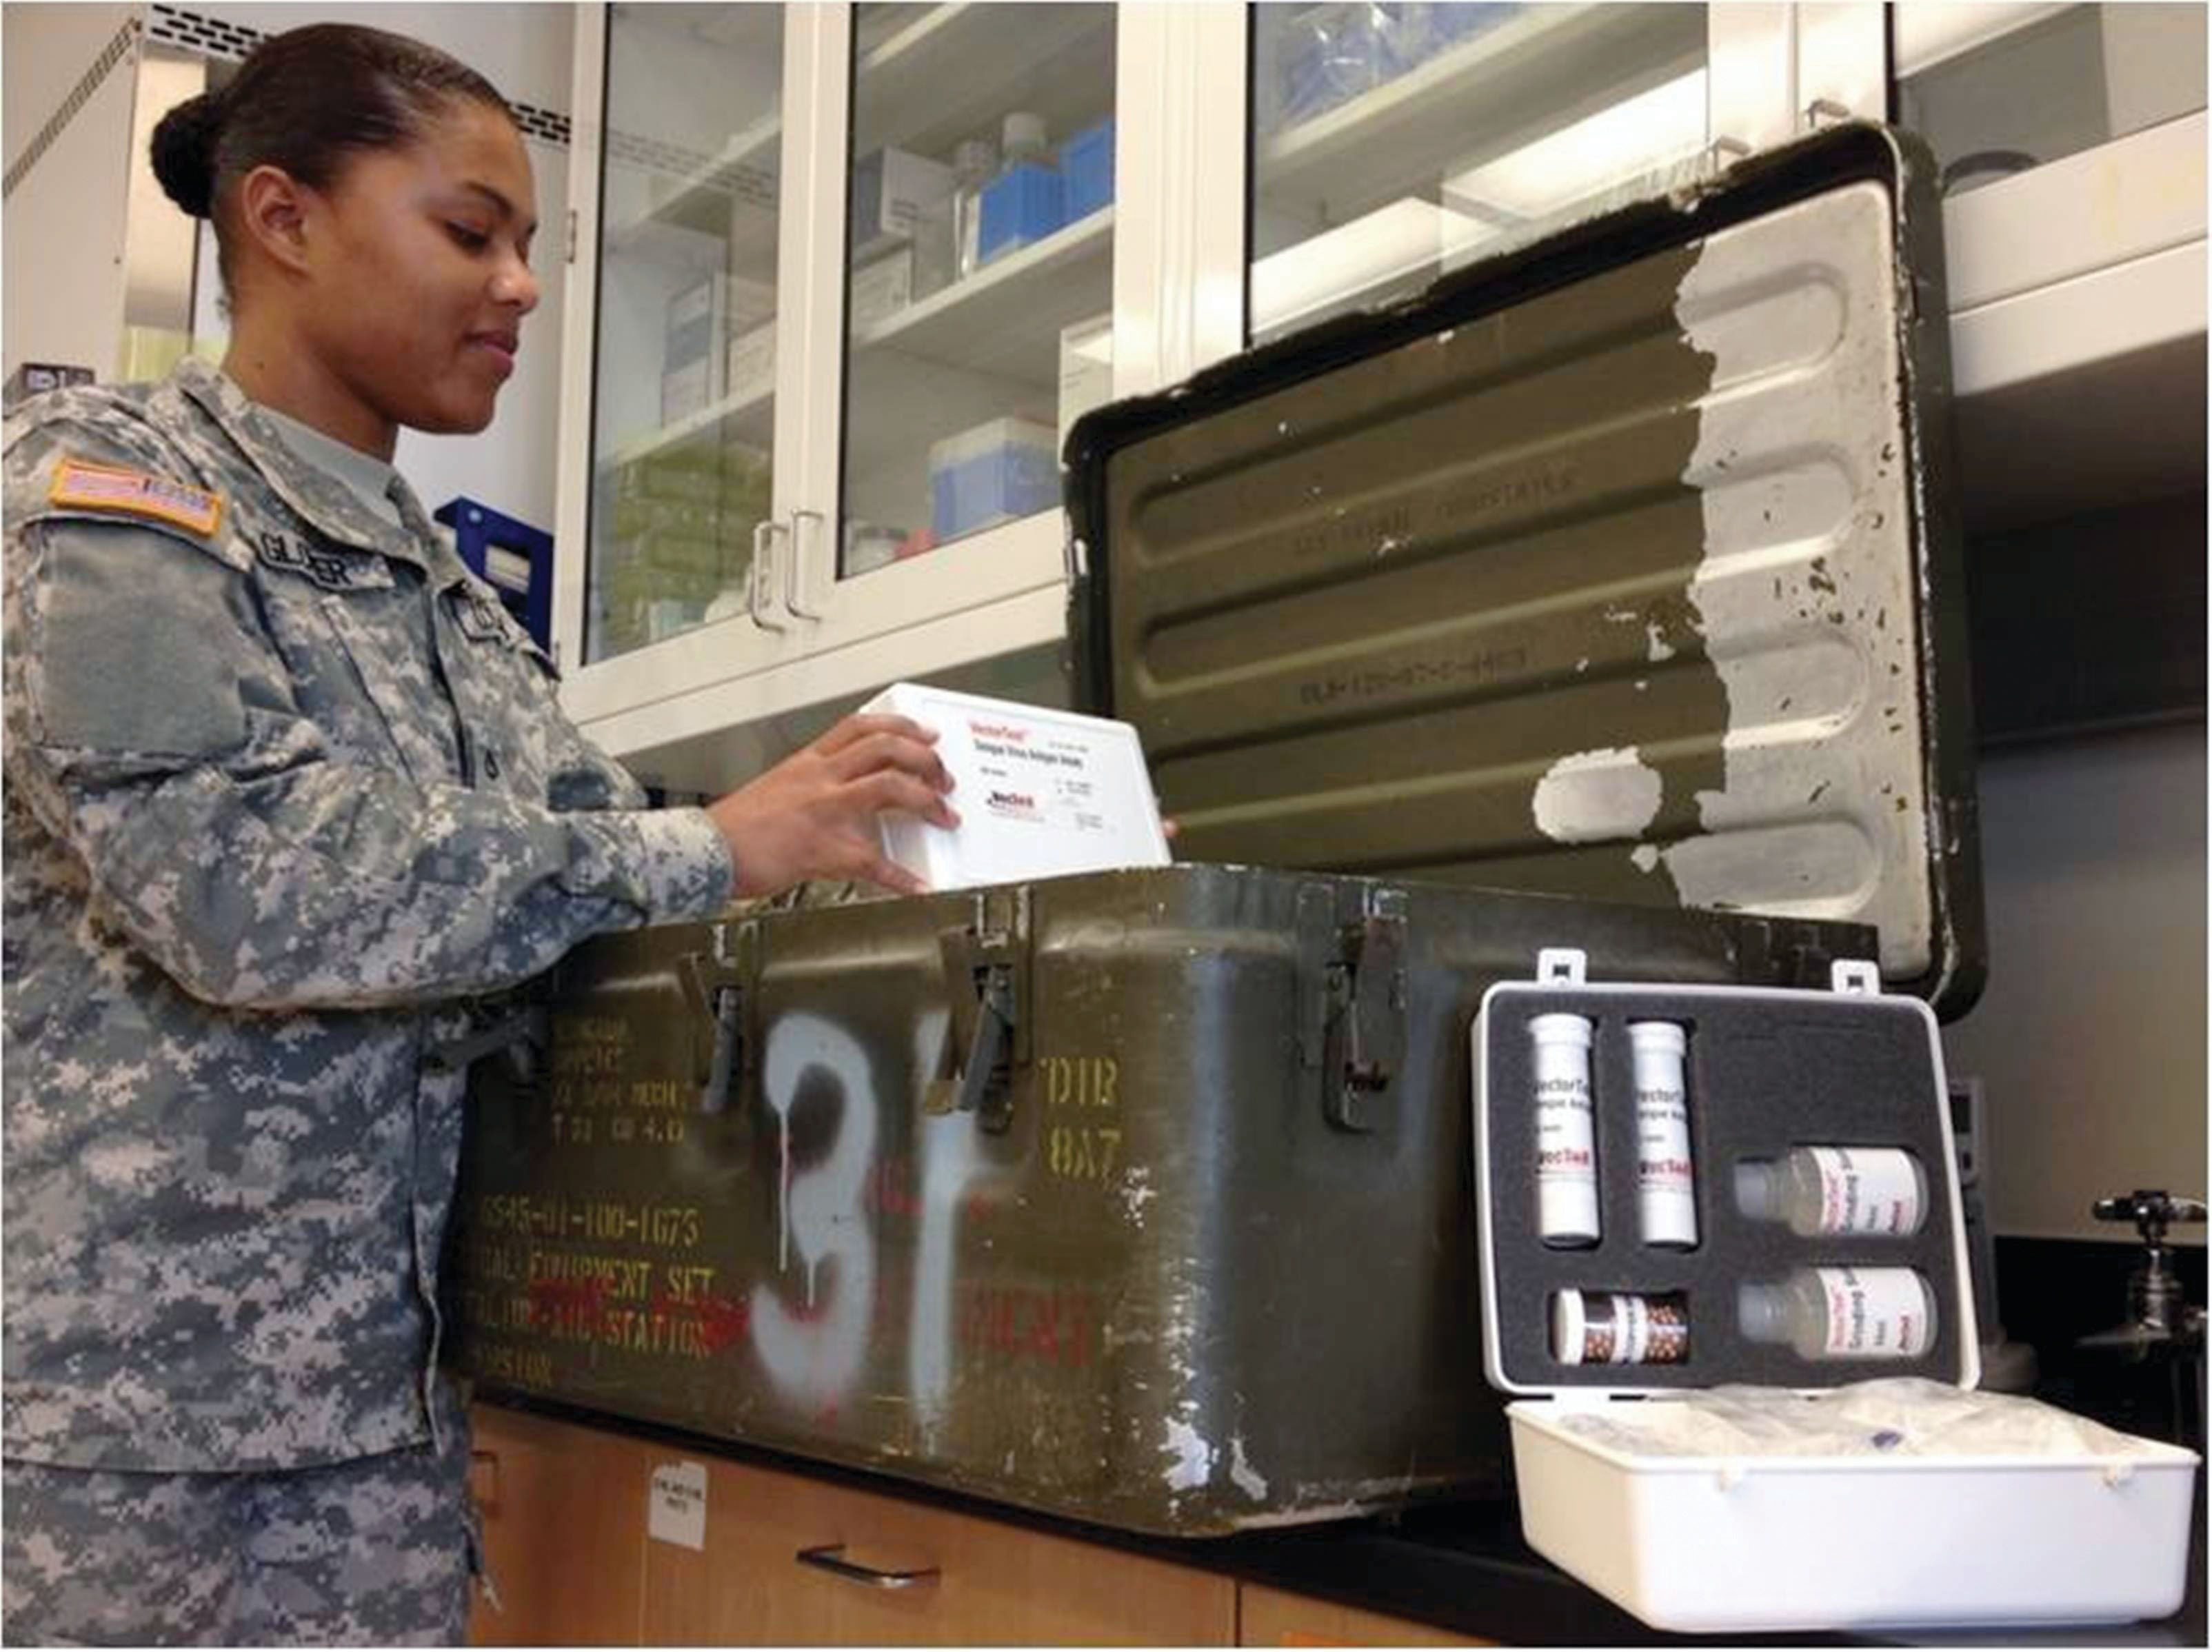 PFC Jessica Glover, a 68S preventive medicine specialist at WRAIR, loads the dengue AV-RDD kit into the Medical Equipment Set Entomological Lab. The kit is the outgrowth of an SBIR initiative begun in 2003. (Photo by Maj. Vanessa R. Melanson, WRAIR)